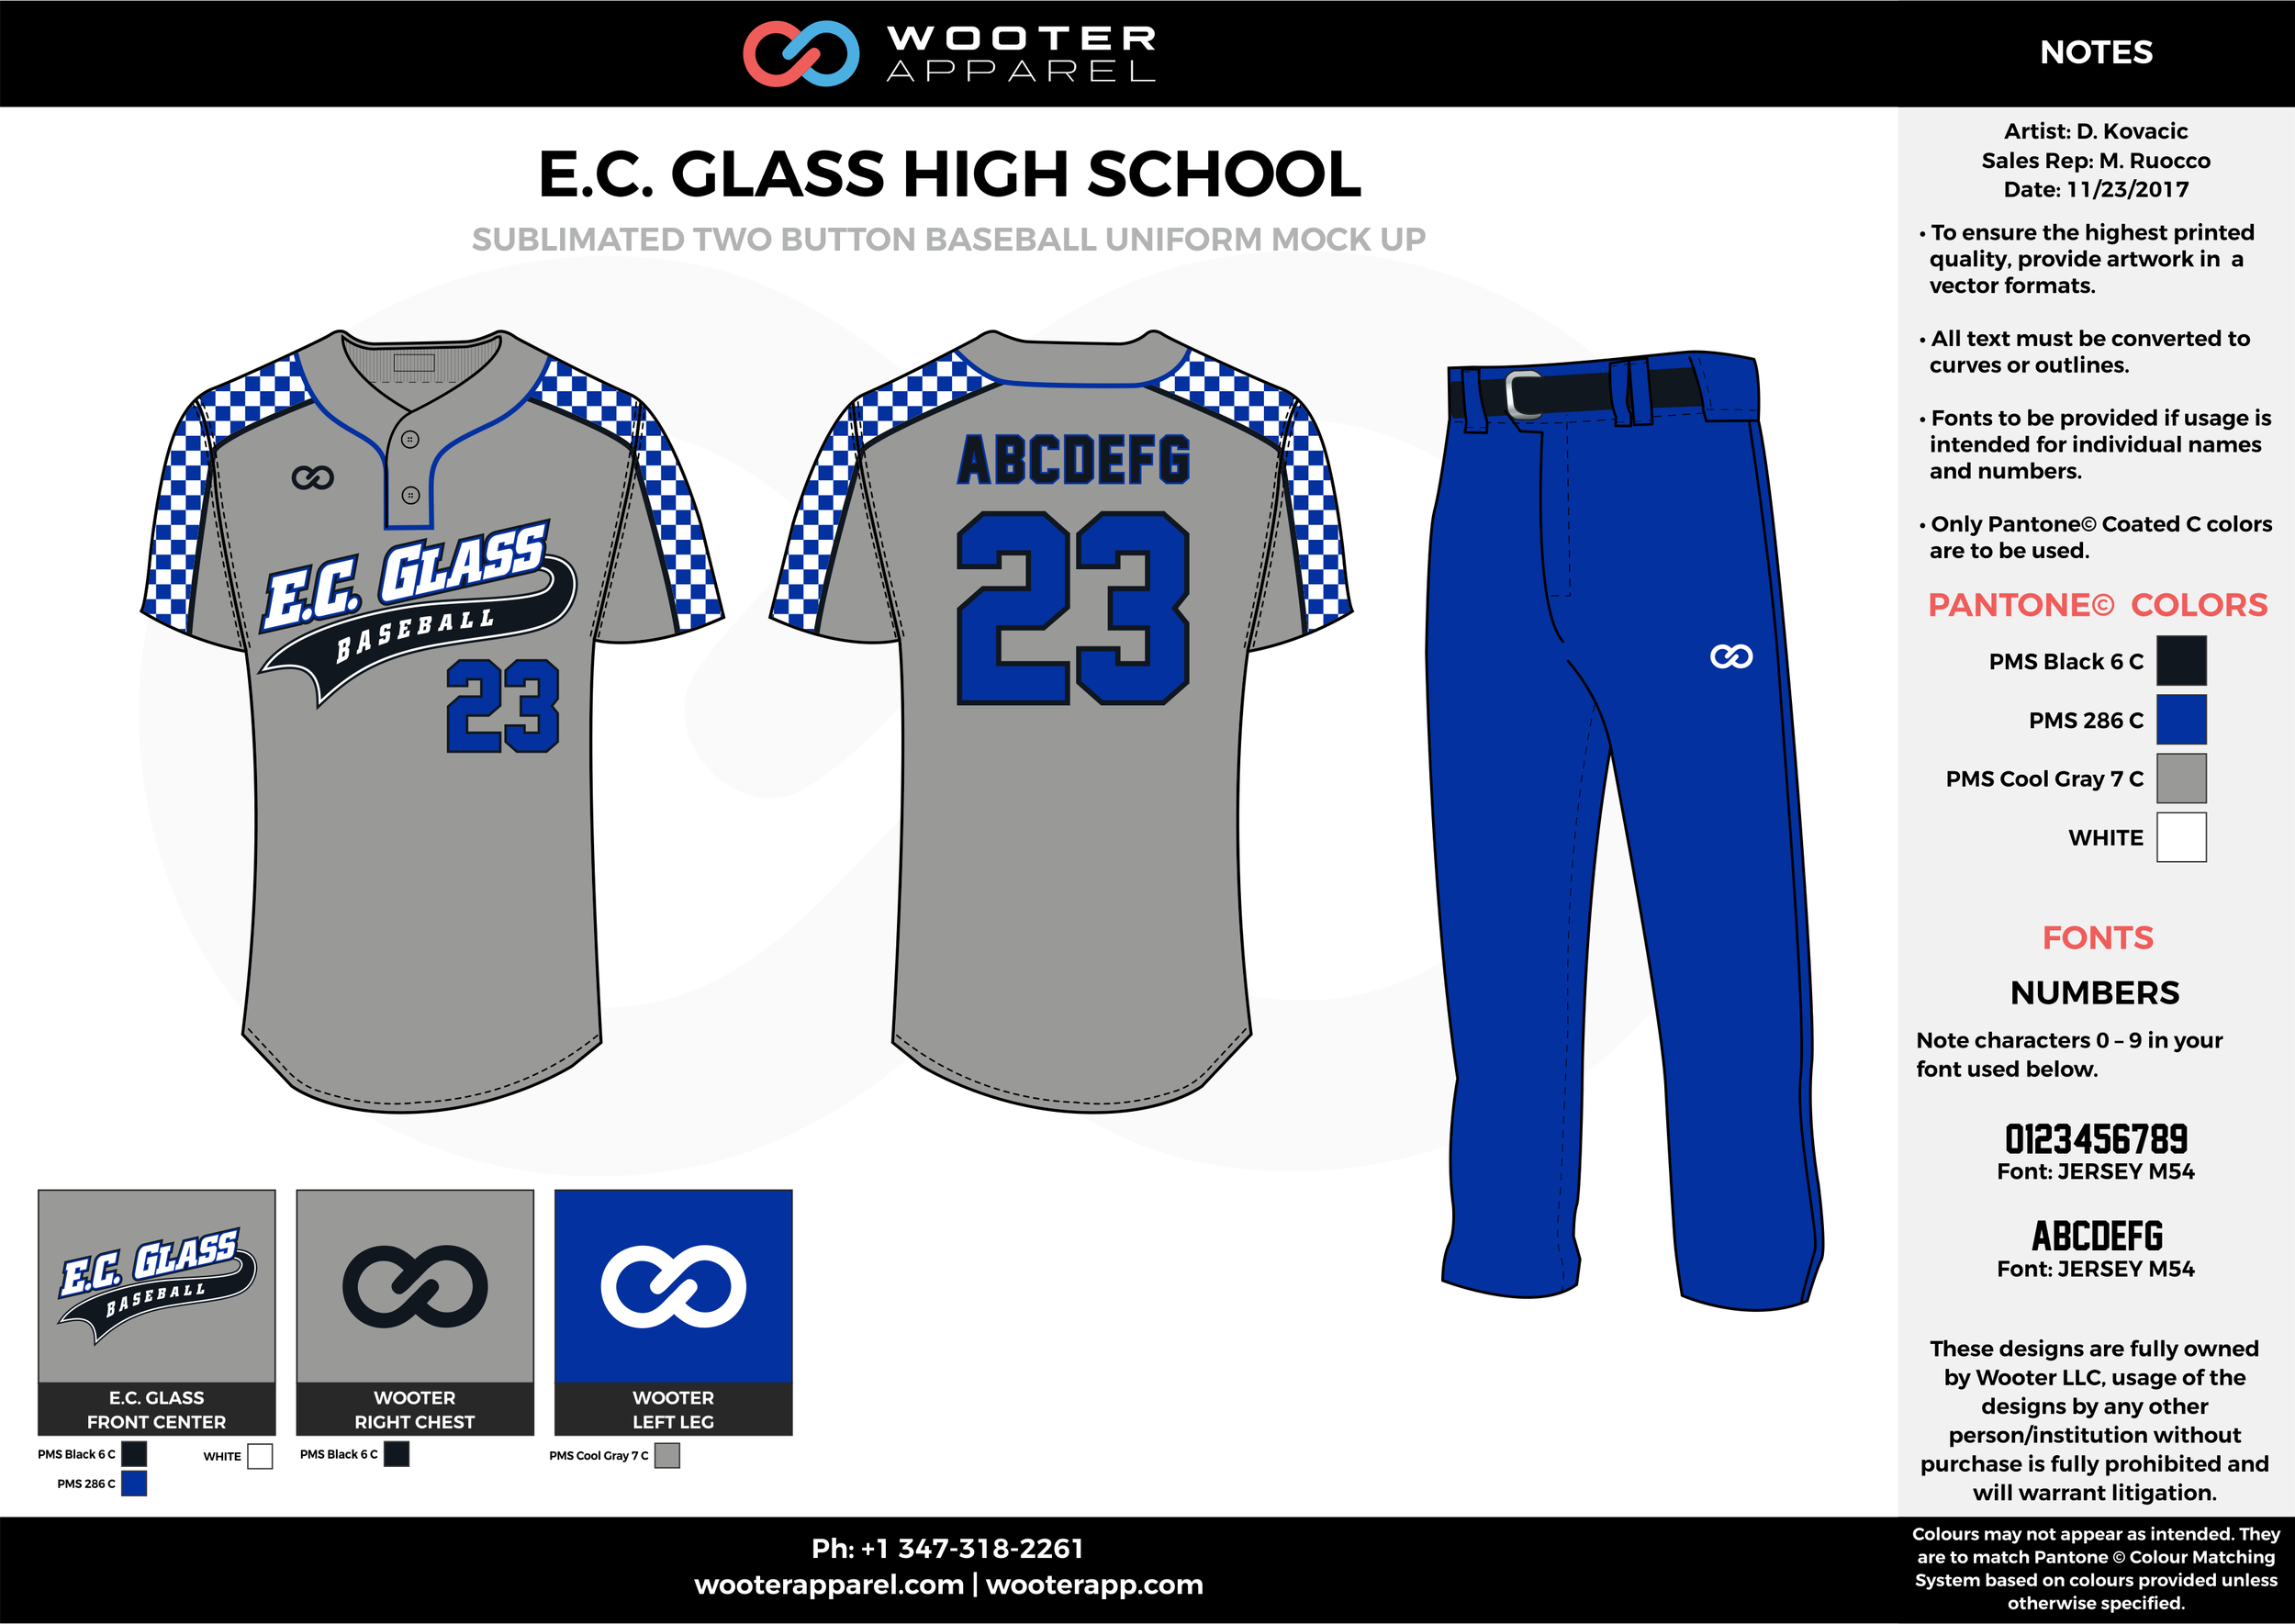 E.C. GLASS HIGH SCHOOL black blue gray white baseball uniforms jerseys pants